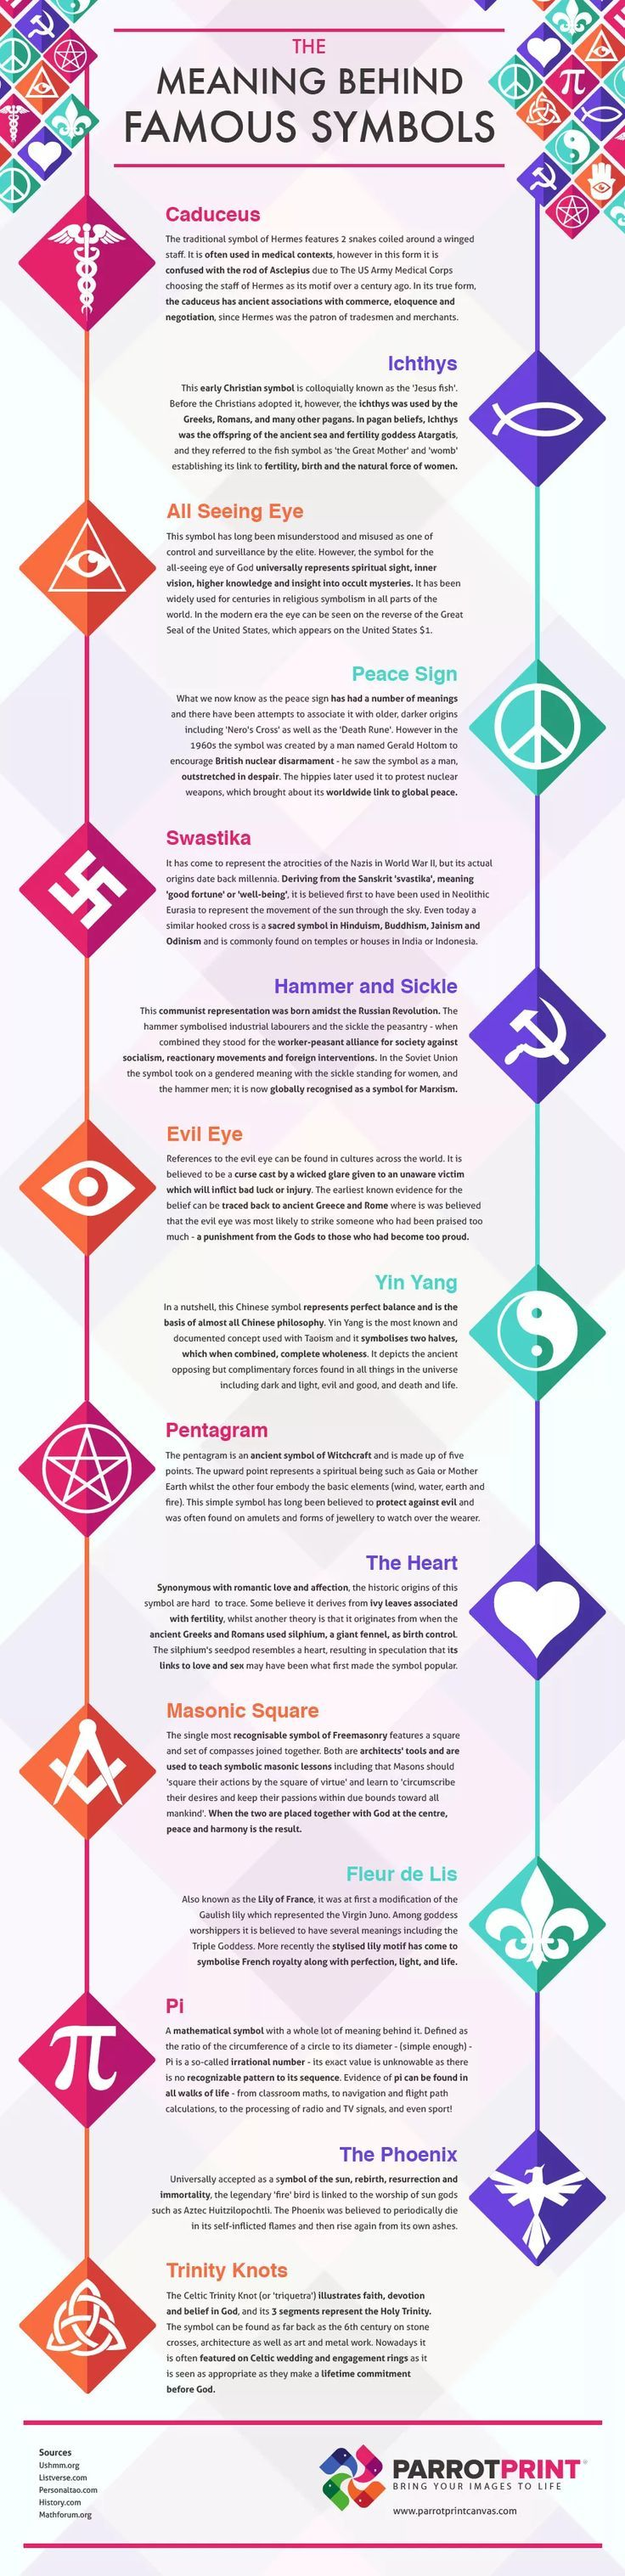 The Meaning Behind Famous Symbols #Infographic #History